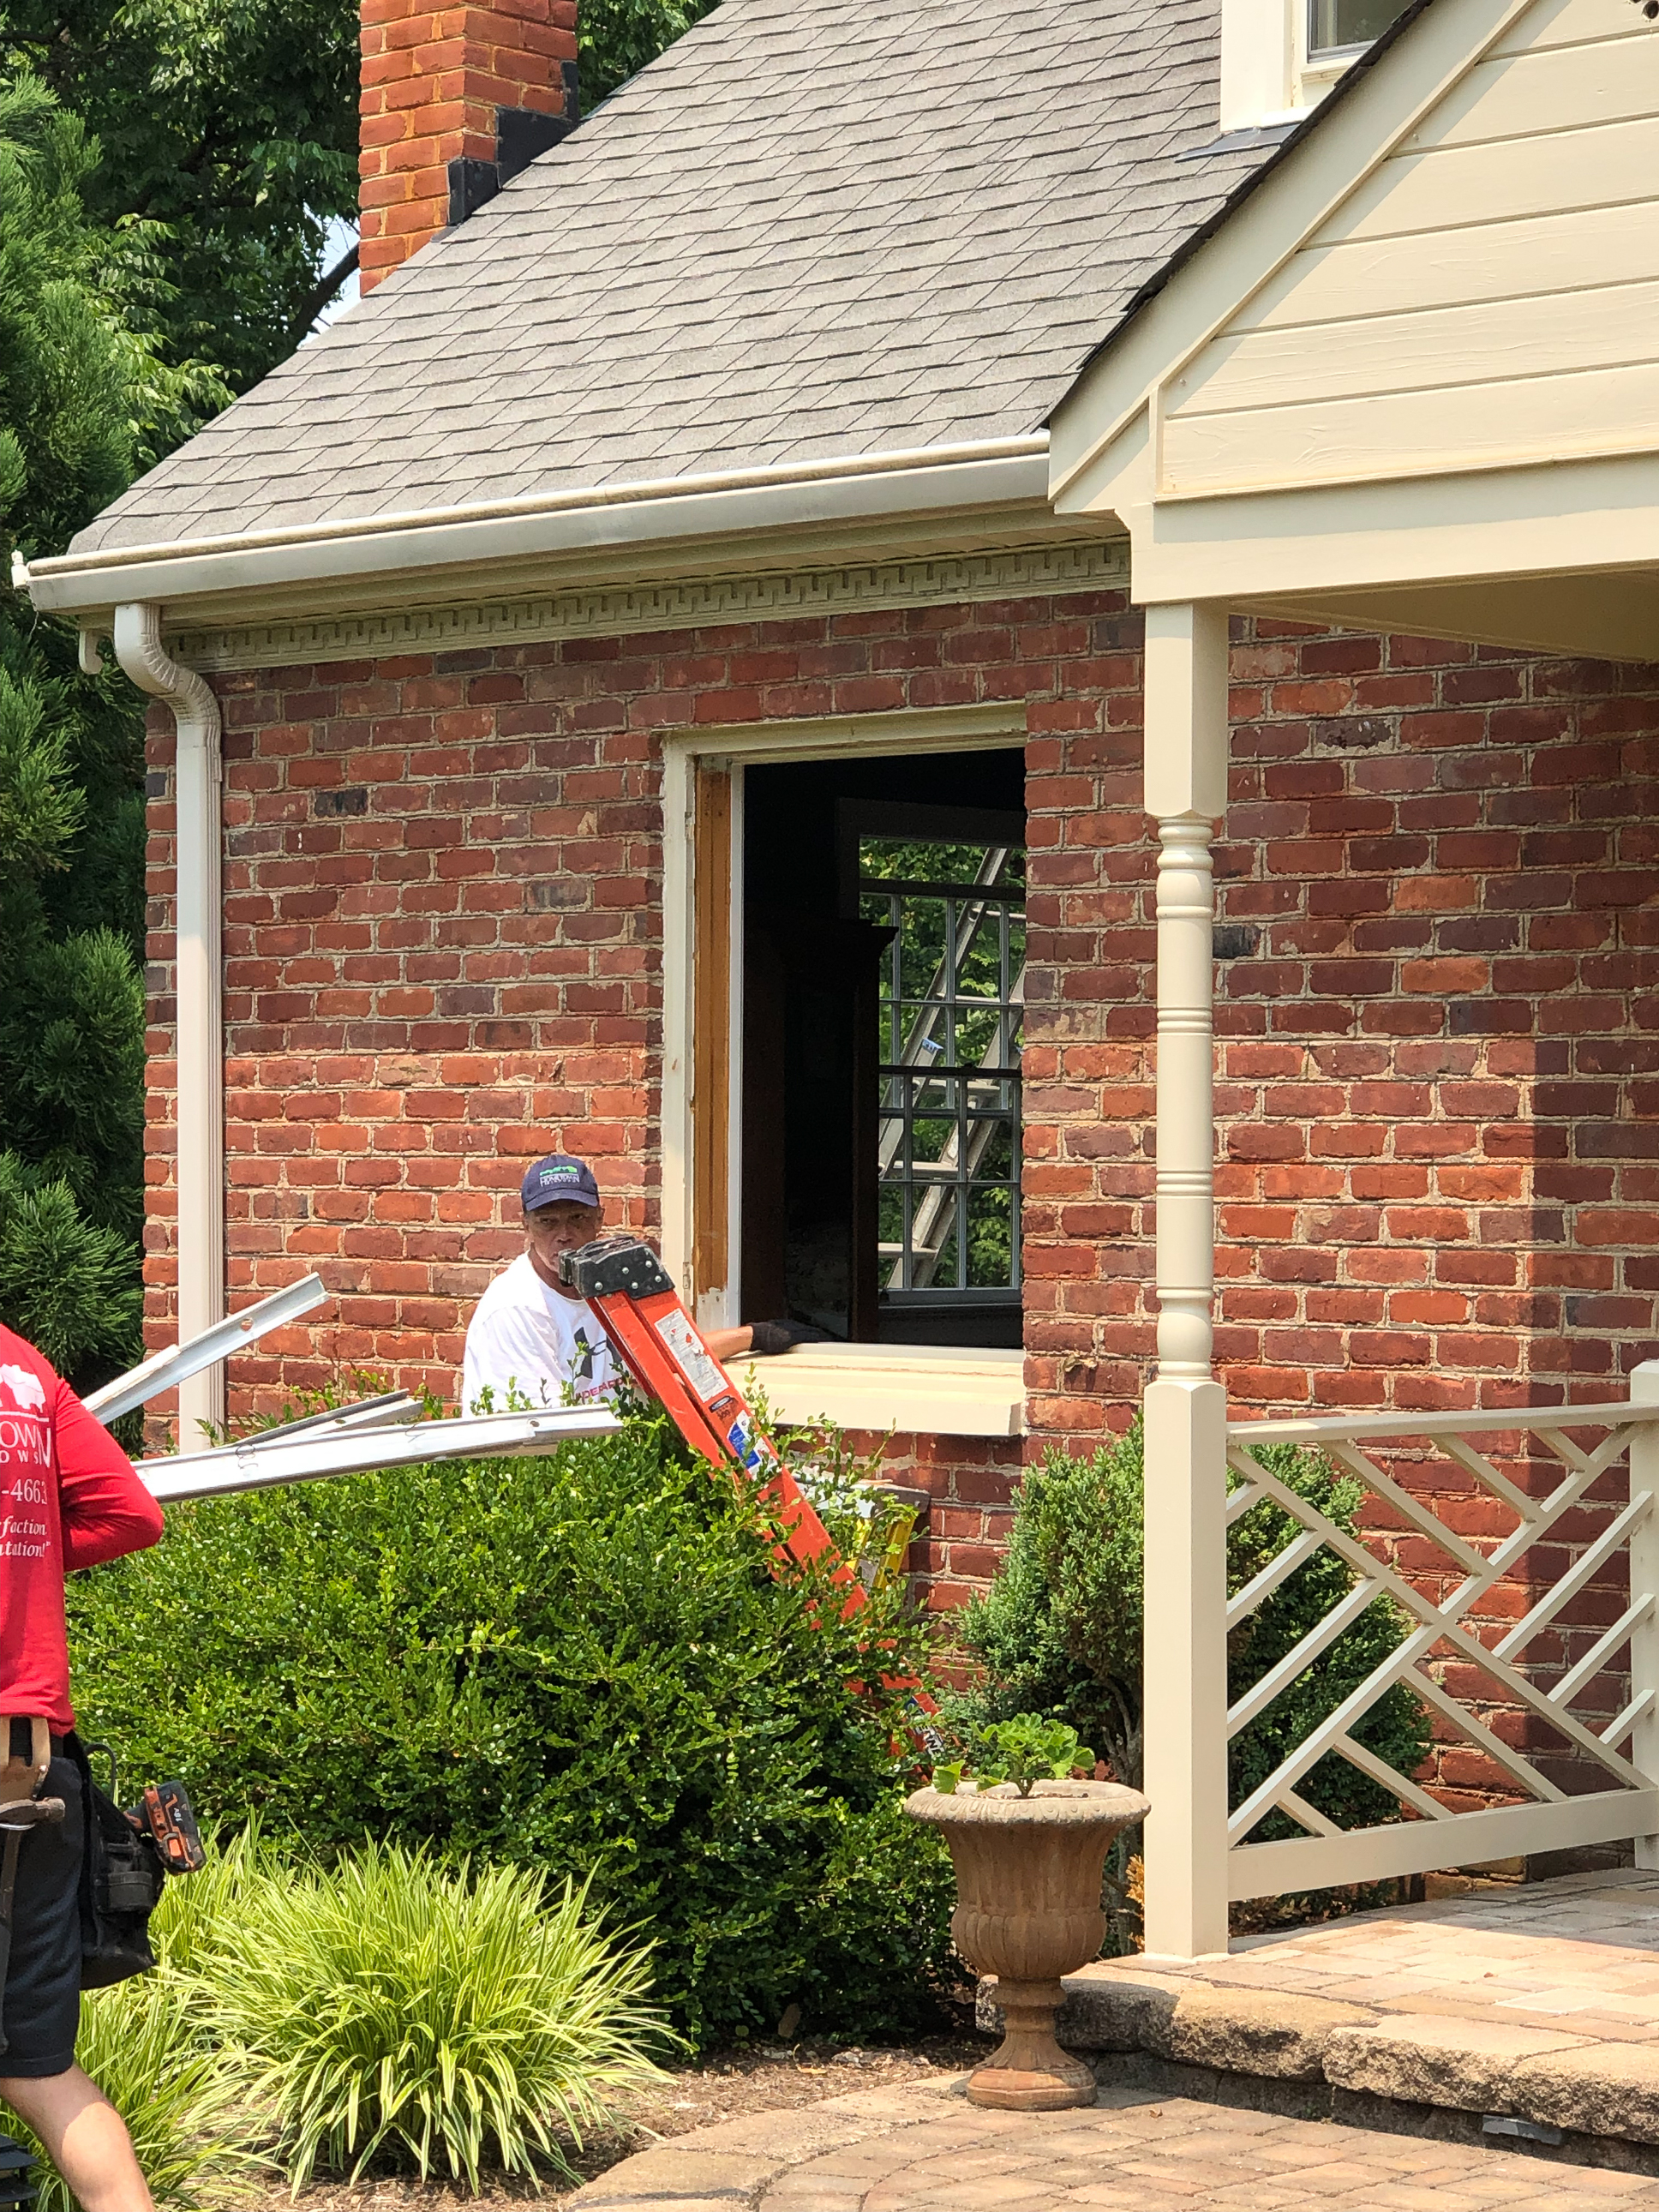 Window replacement by Hometown Windows in Lynchburg, VA